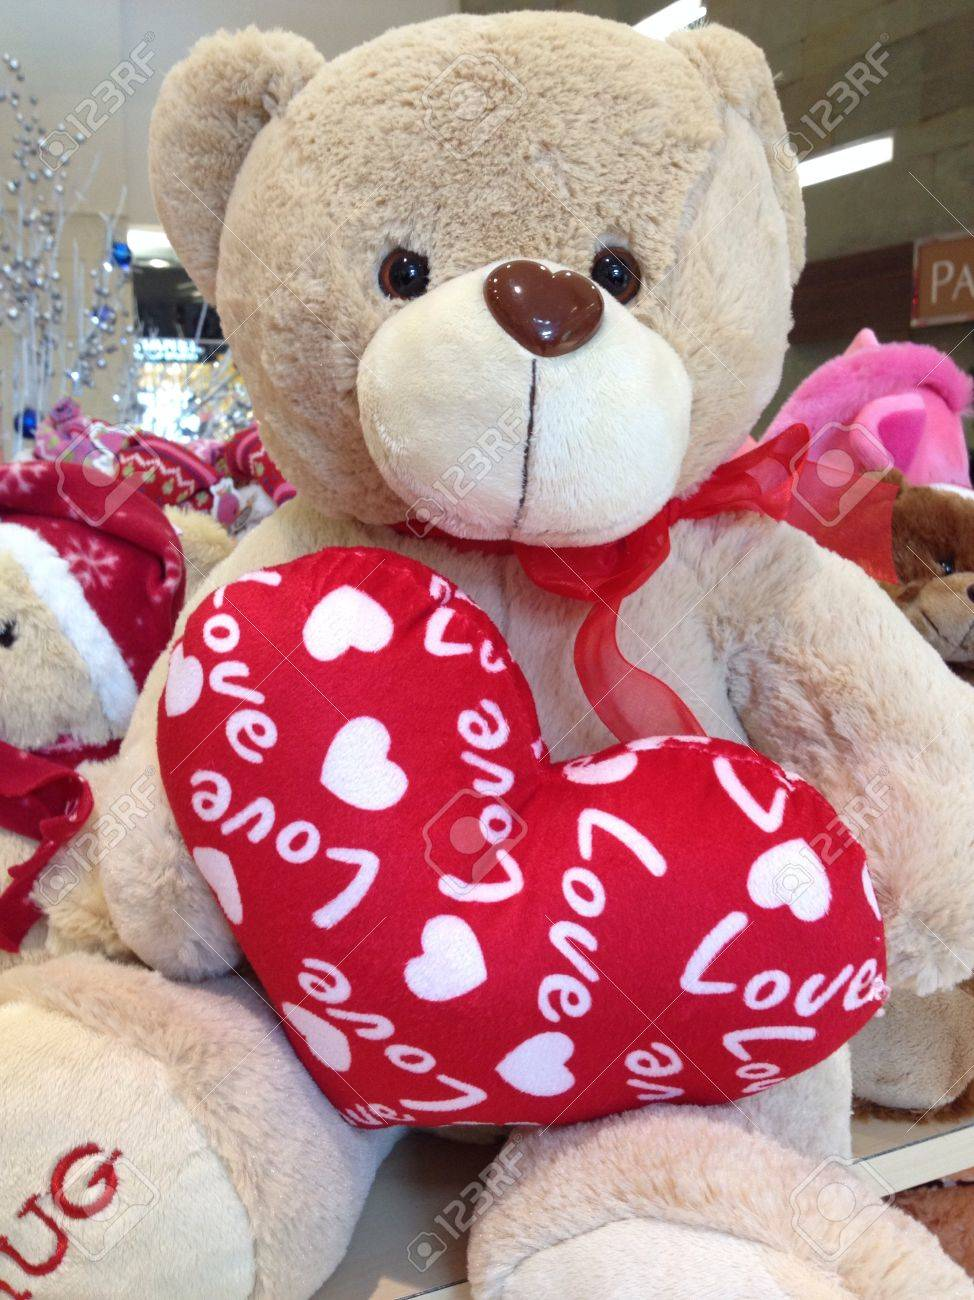 Stock Photo - Teddy bear as valentines gift